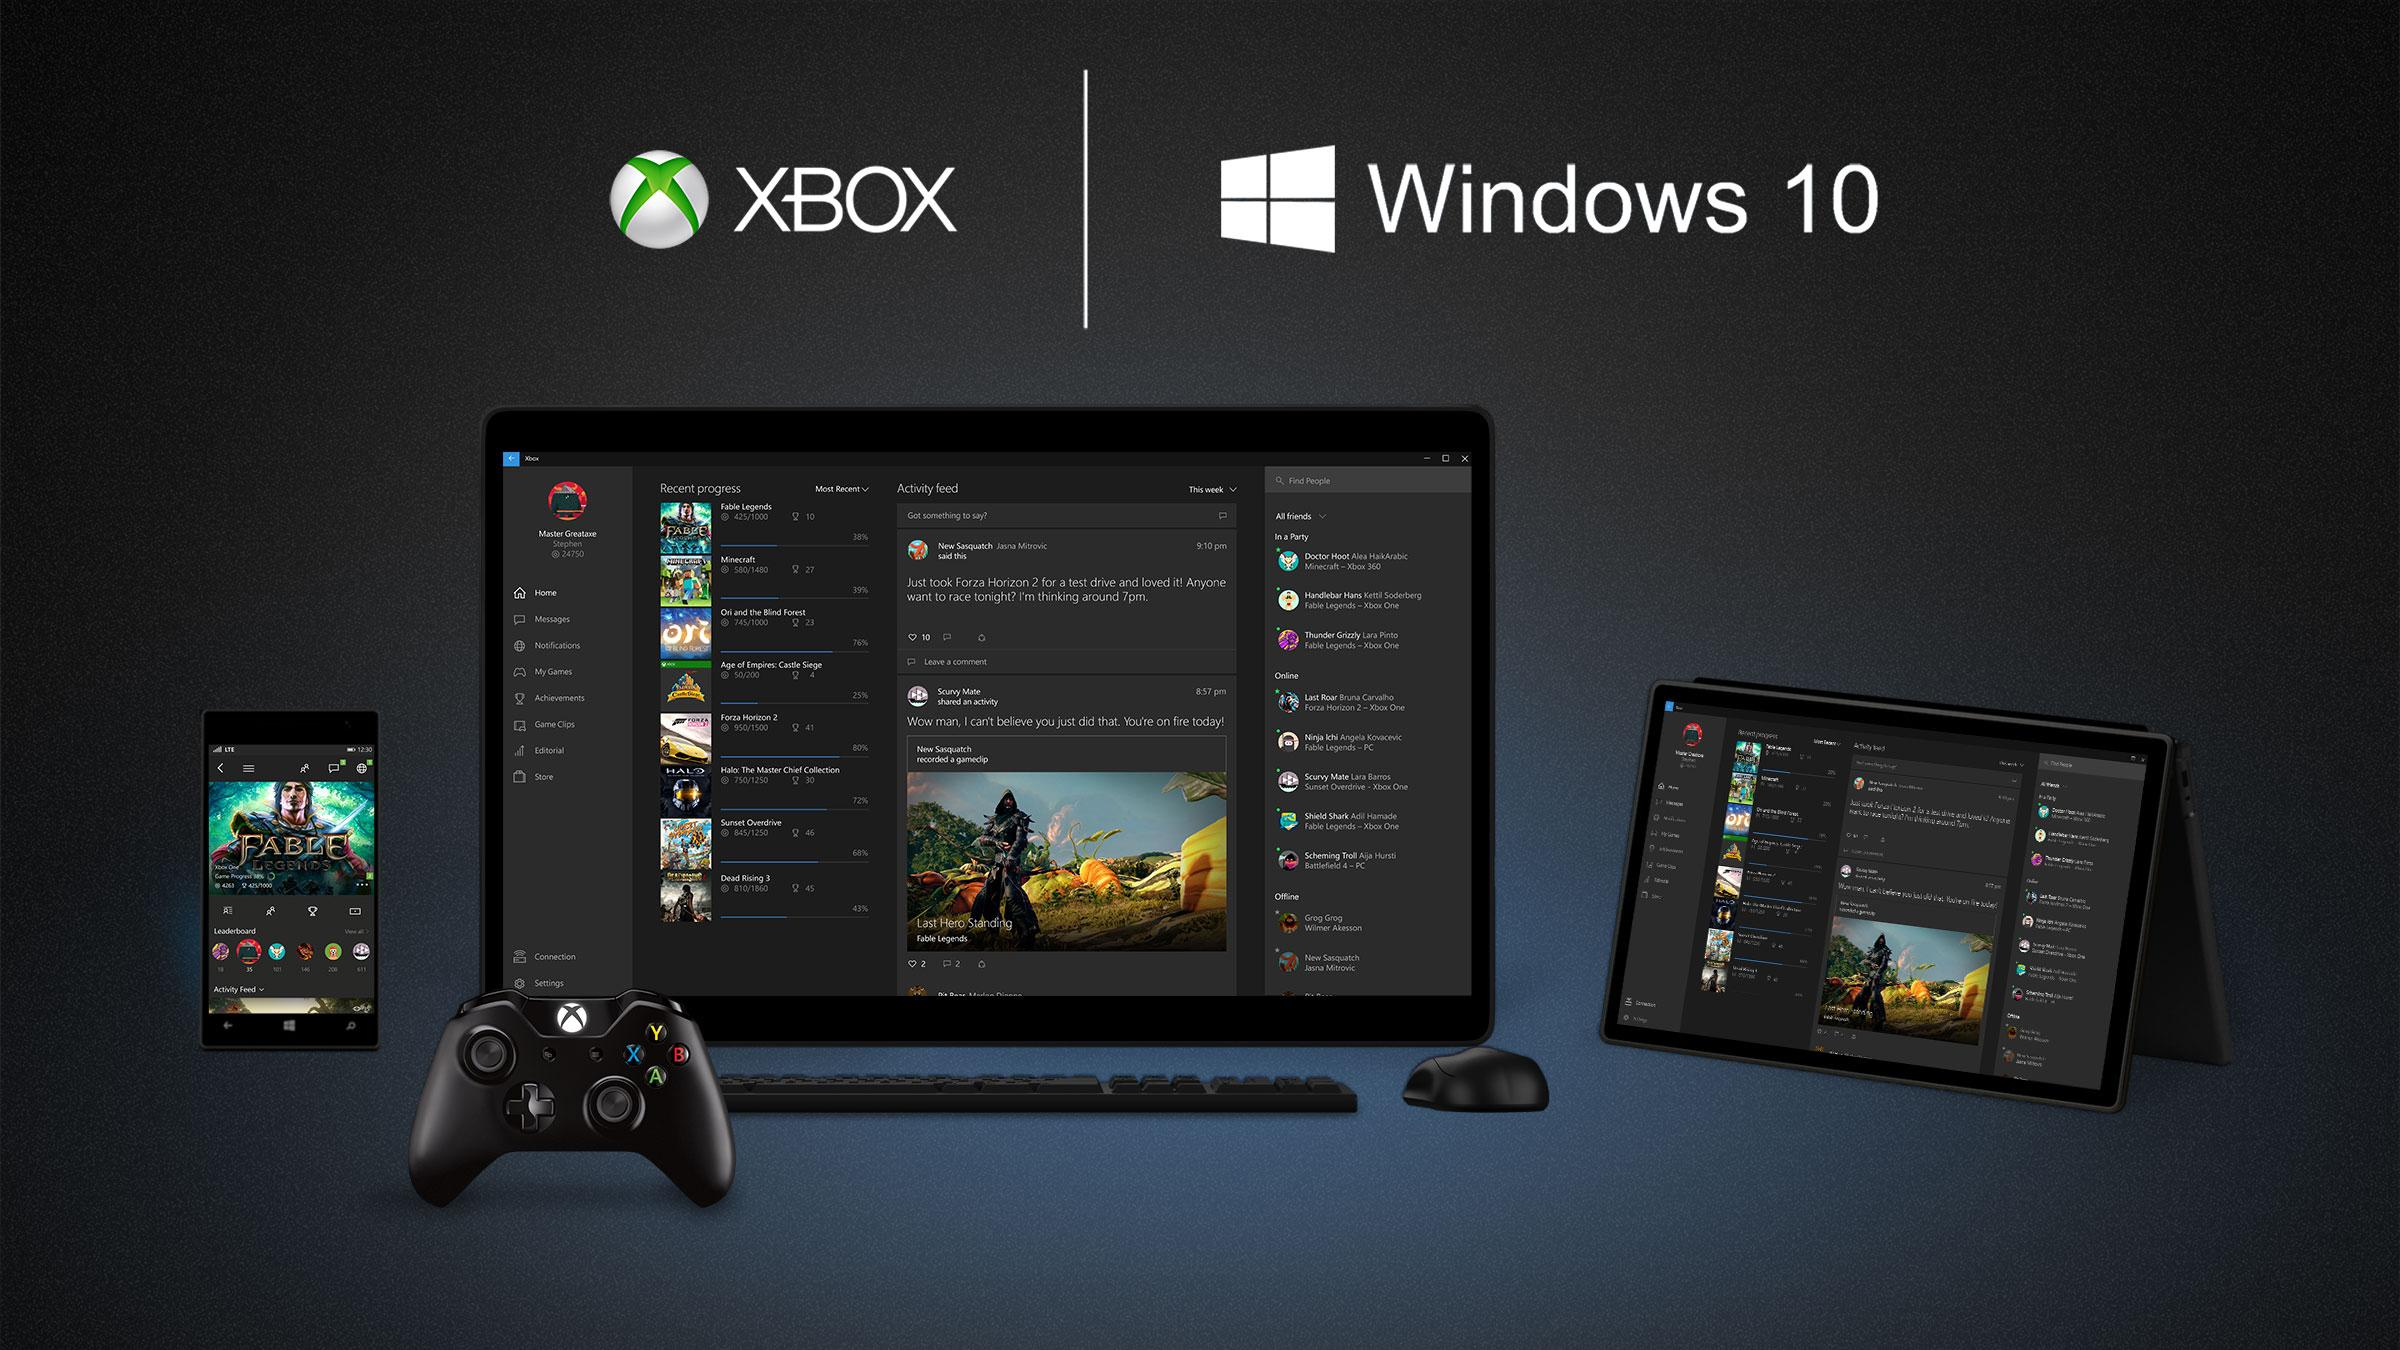 Here's what you need to know about streaming Xbox One games to PC and tablet